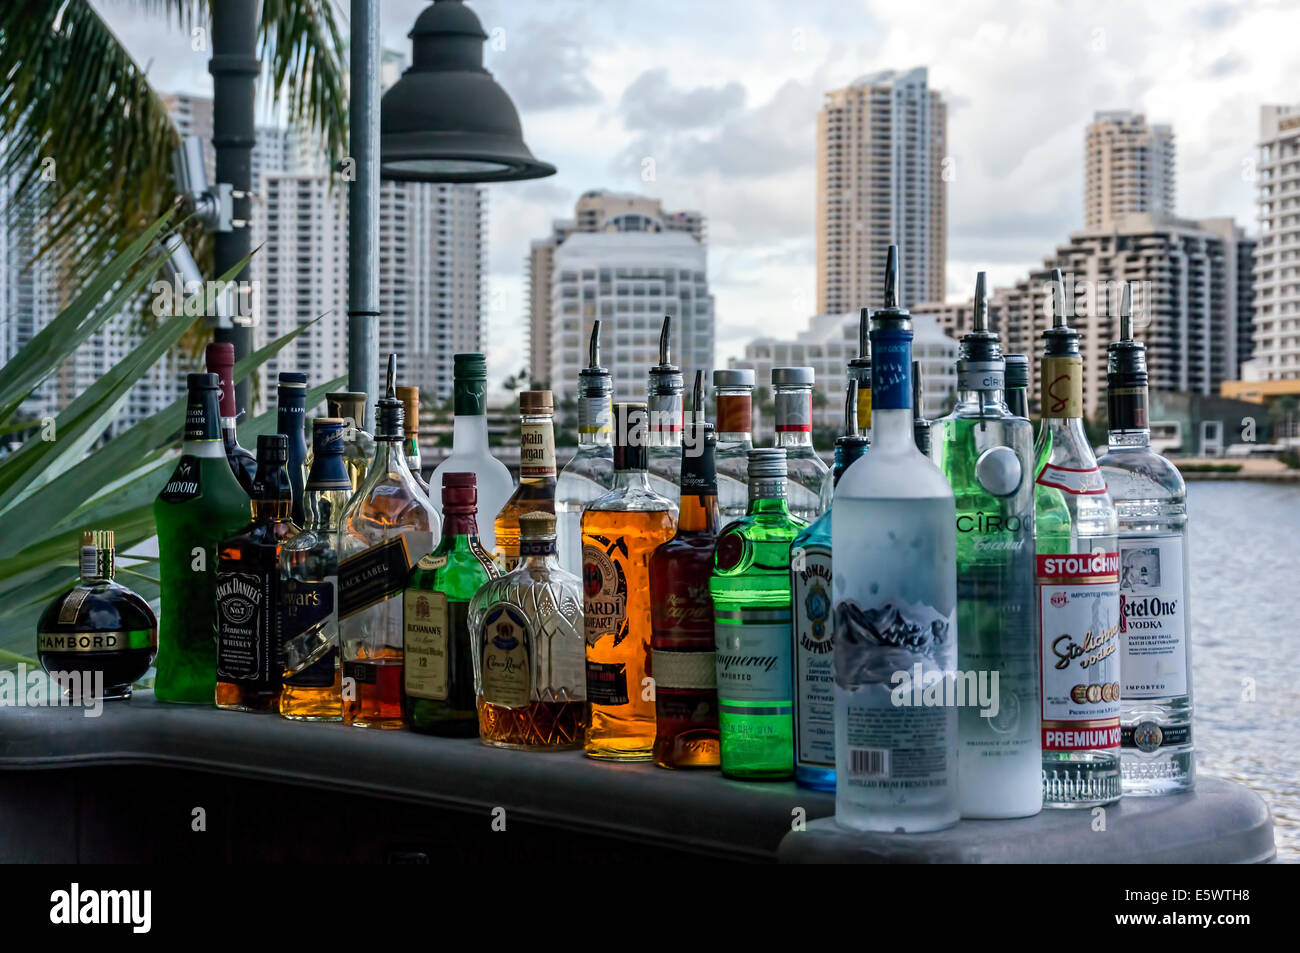 Liquor Bottles Sit On The Patio Bar Of Crazy About You Restaurant On  Biscayne Bay In Brickell Area Of Miami, Florida.